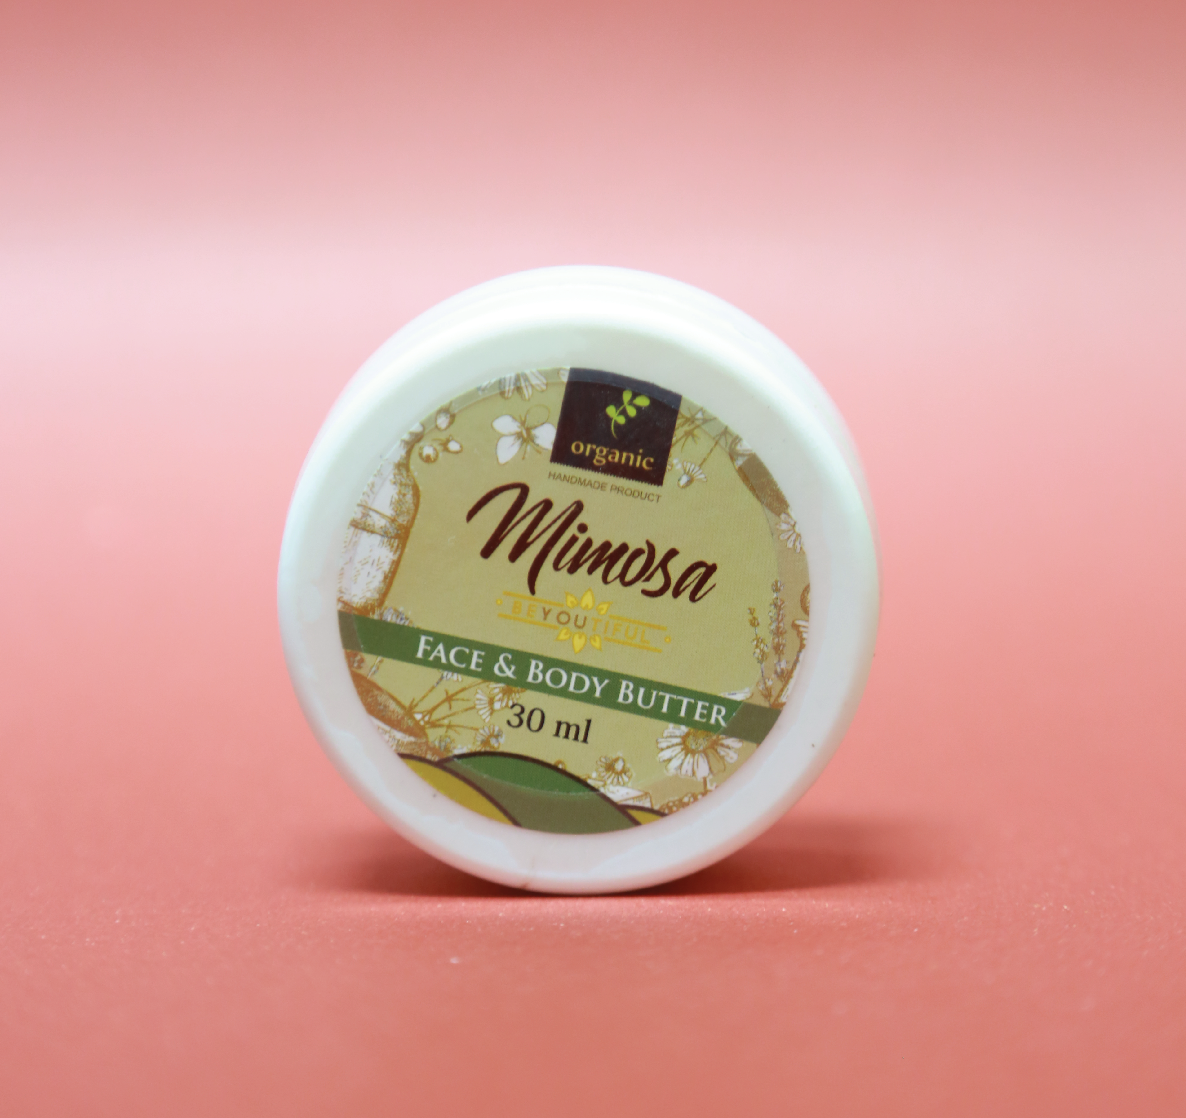 Mimosa Face and Body Butter – 30ml